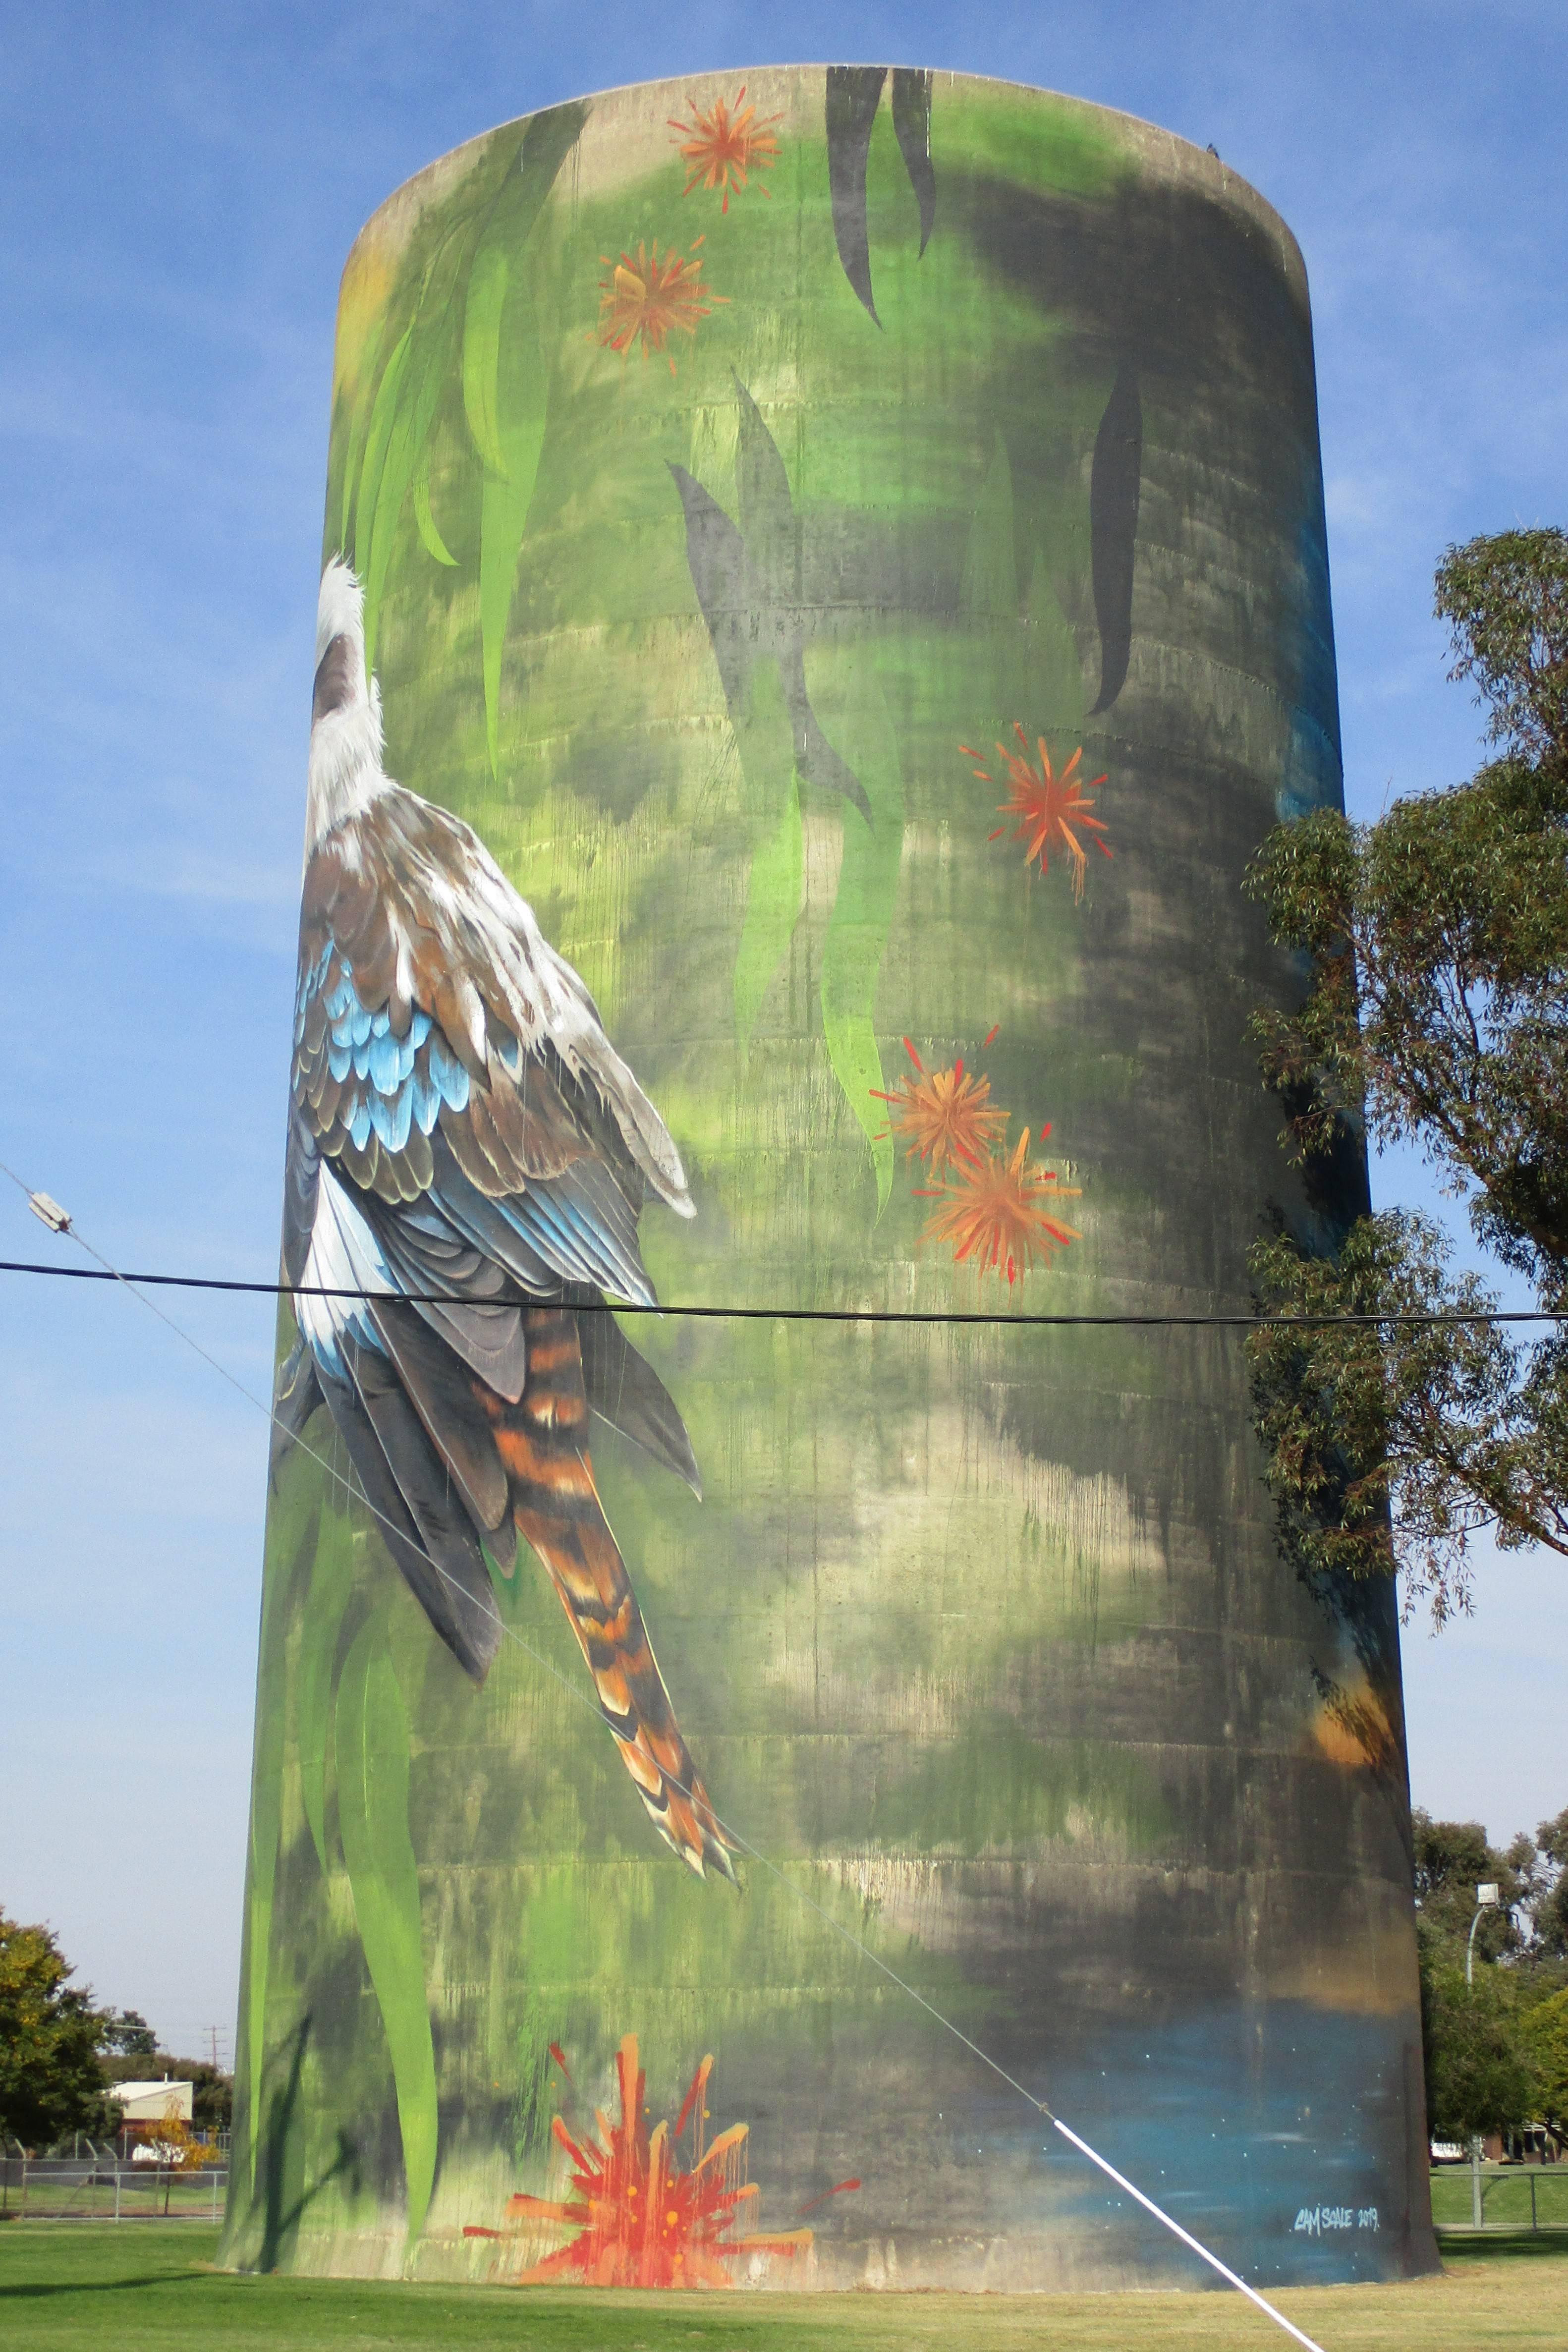 10. Deniliquin Water Tower